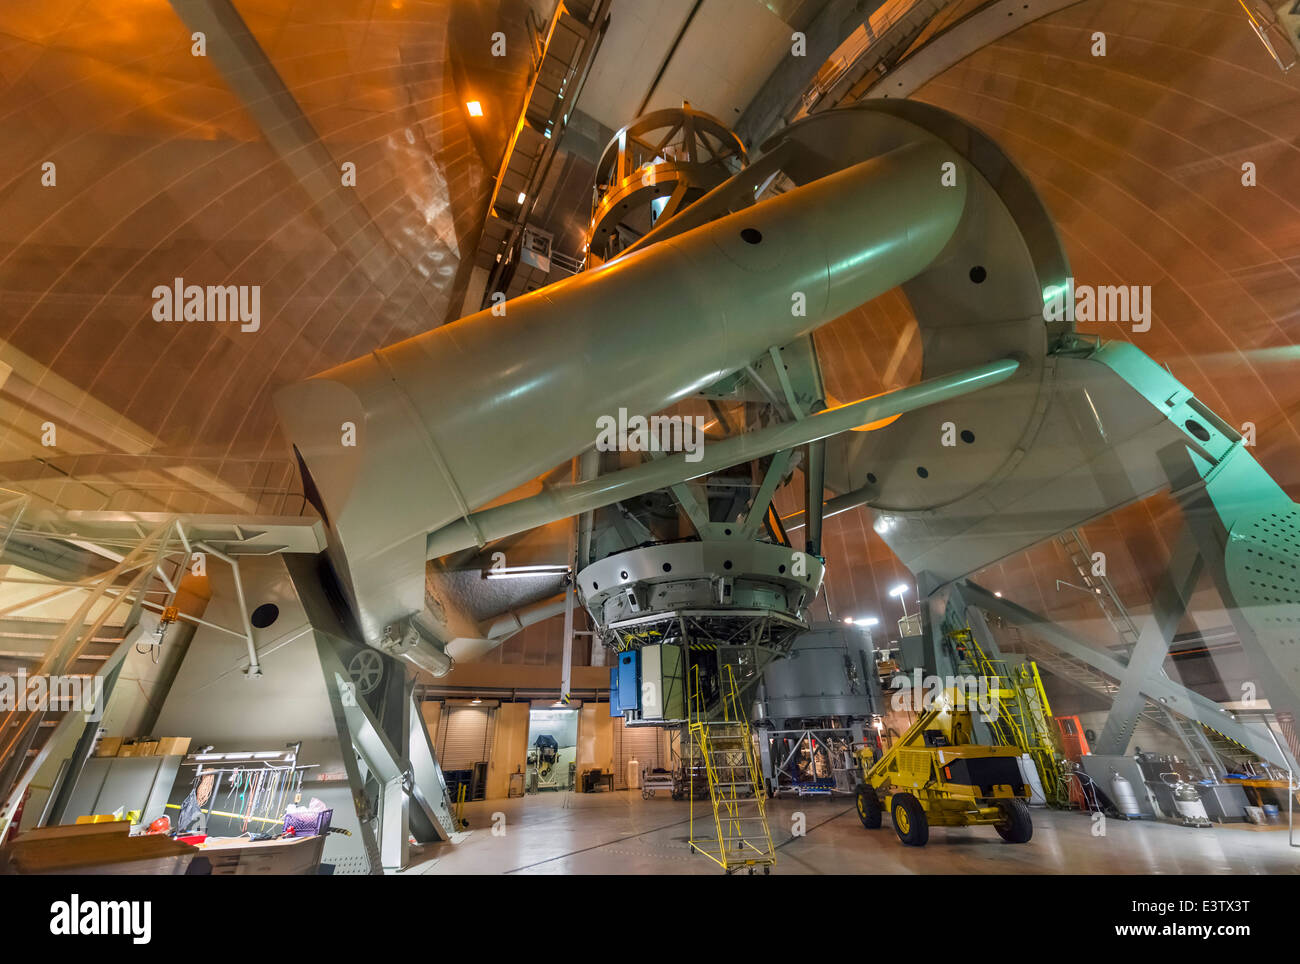 Interior of the 200 inch Hale Telescope at the Palomar Observatory, San Diego County, California, USA - Stock Image